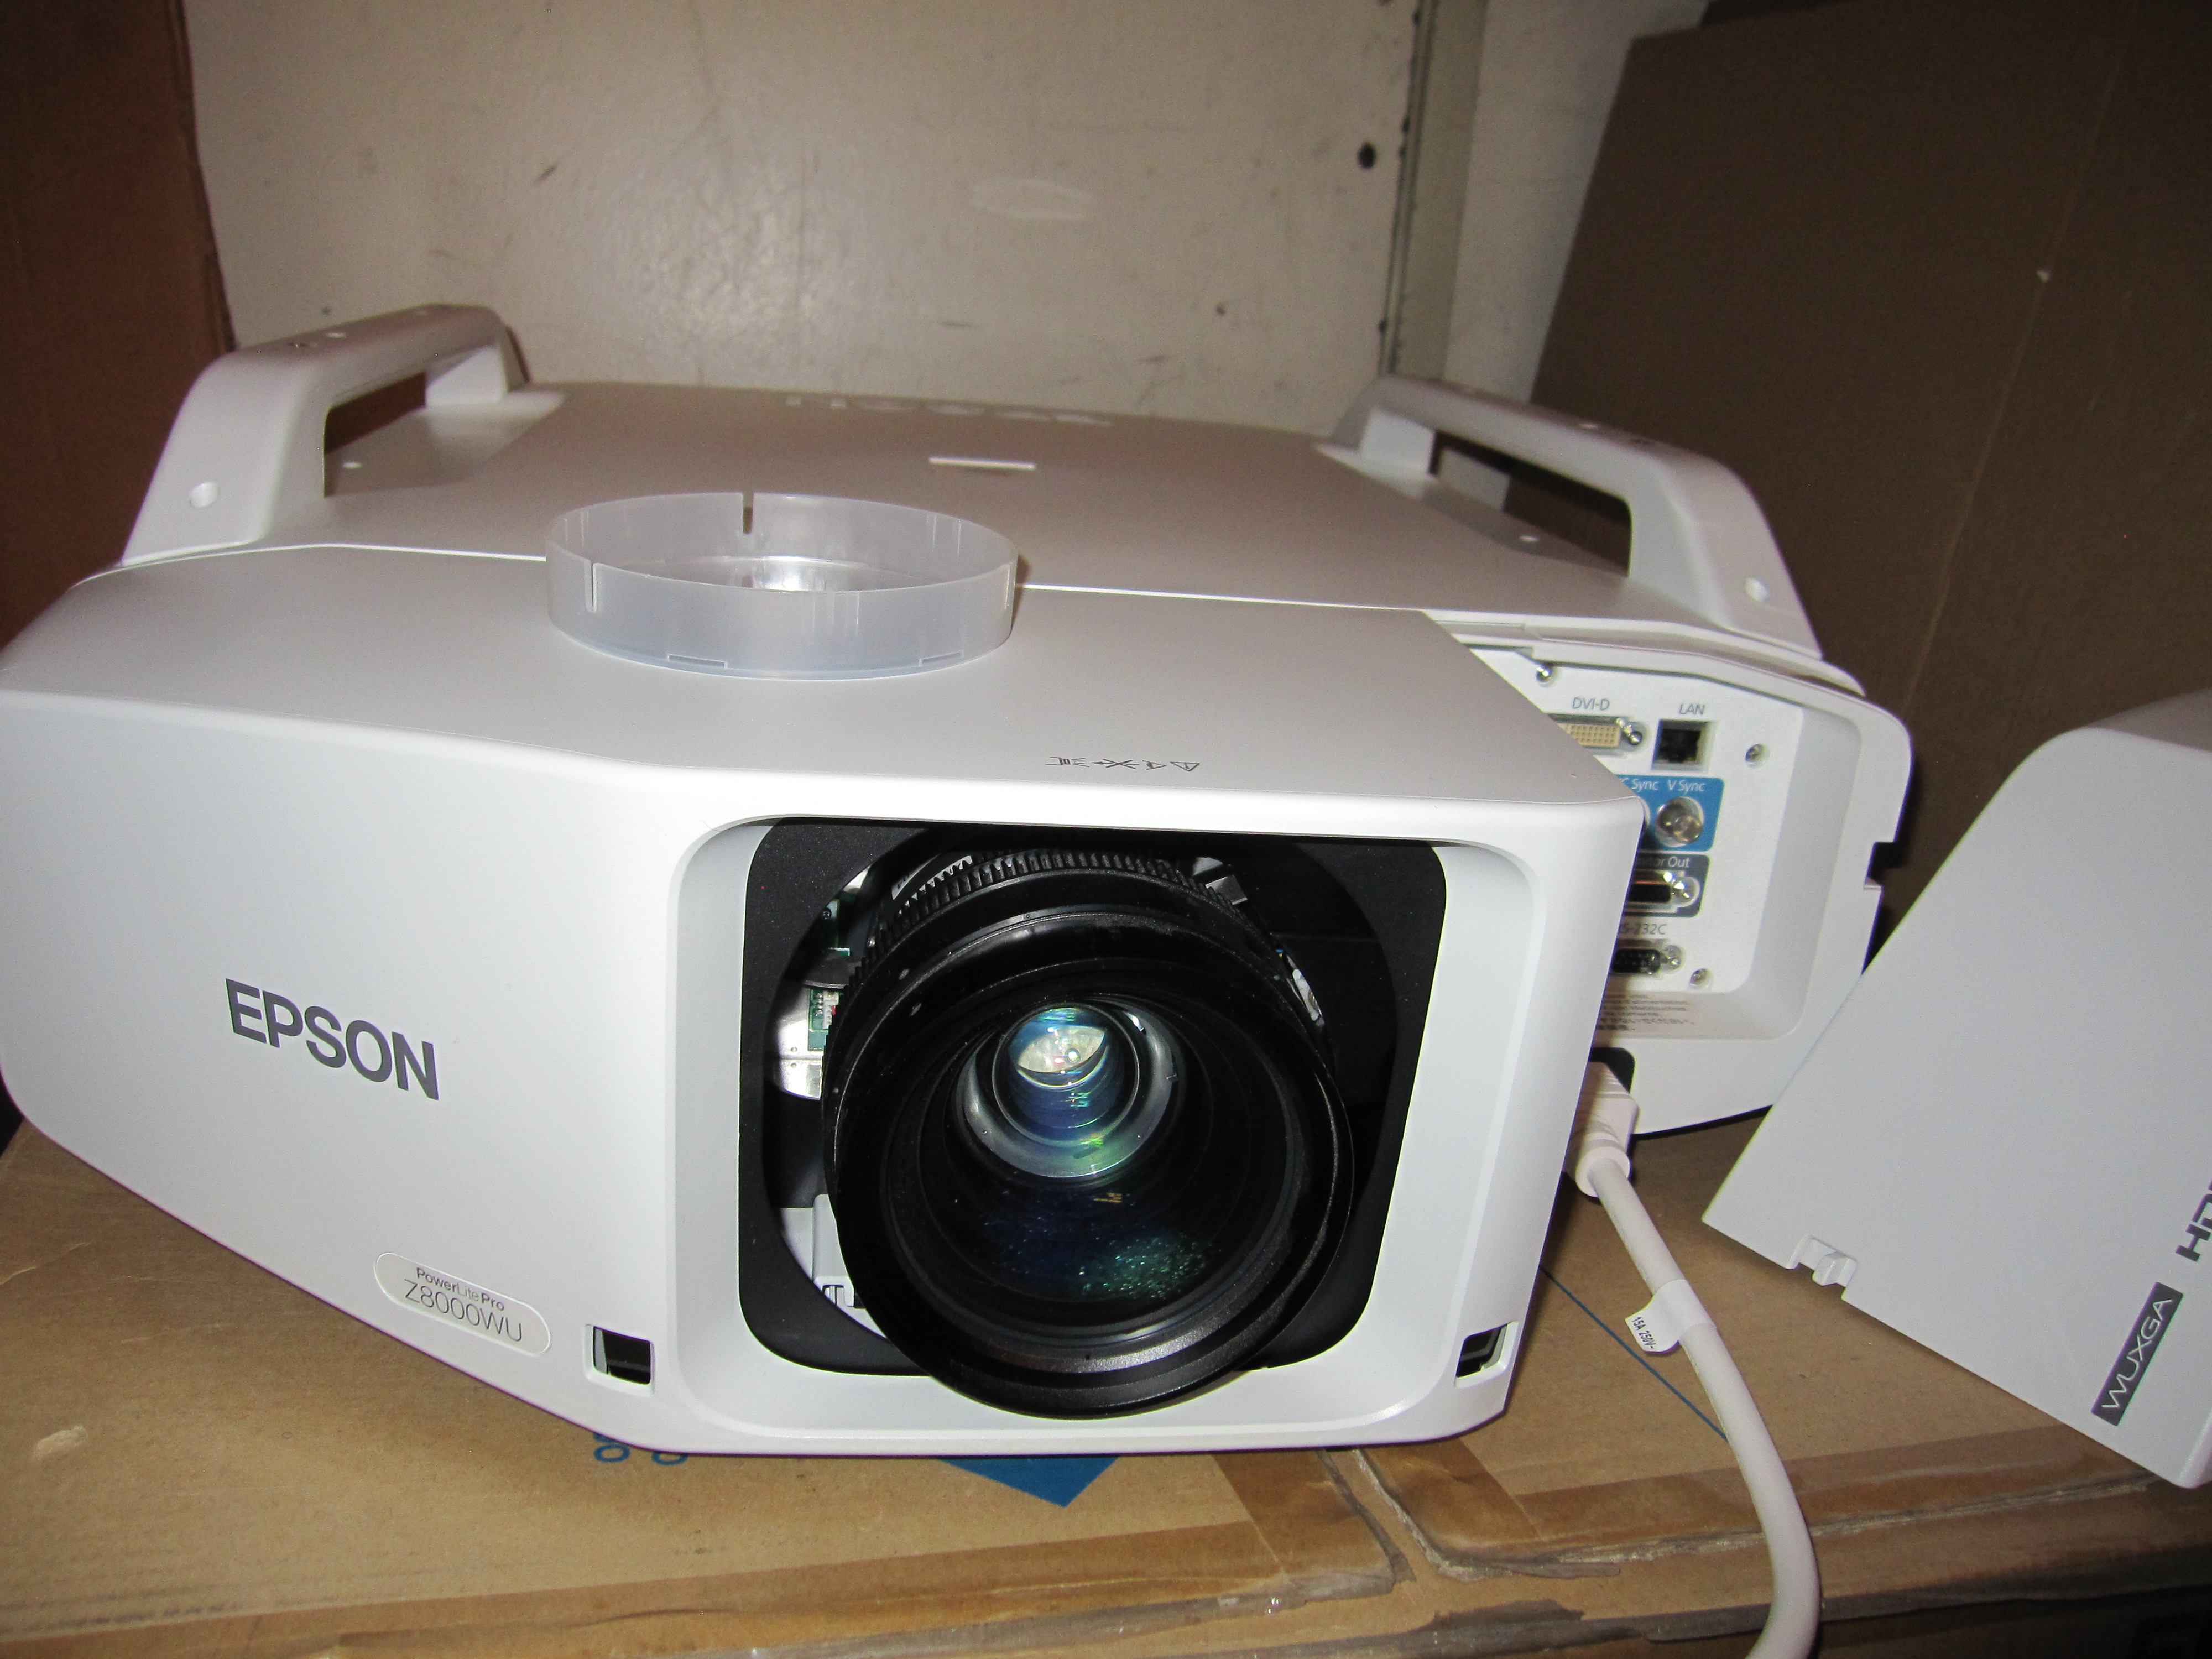 Epson PowerLite Pro Z8000WU Model H266 Projector With Lens, Software,  Remote control, VGA Cable